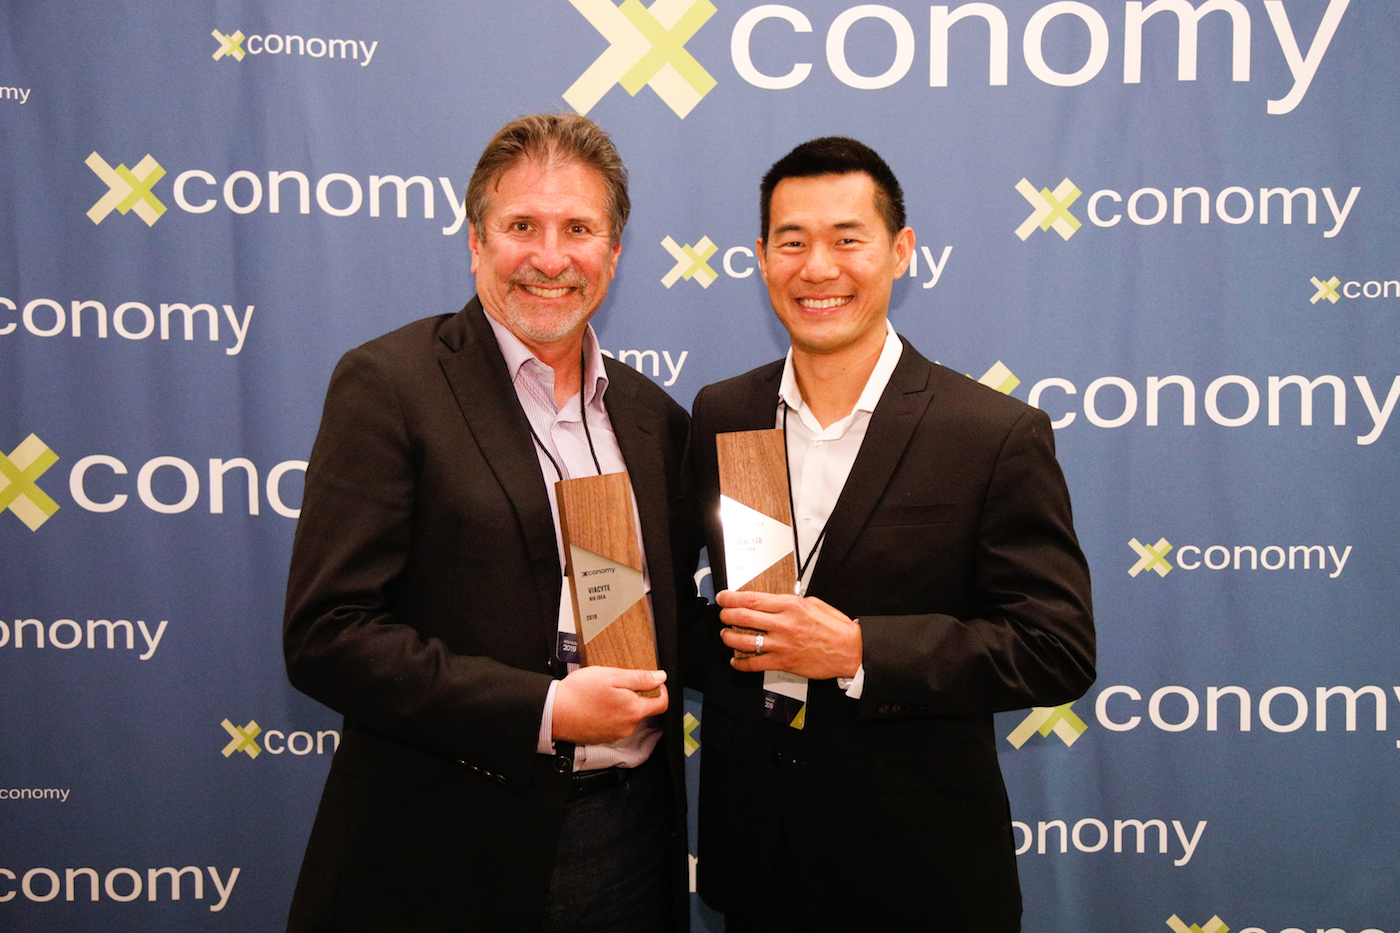 Big Idea Winners, Paul Laikind and Gene Yeo